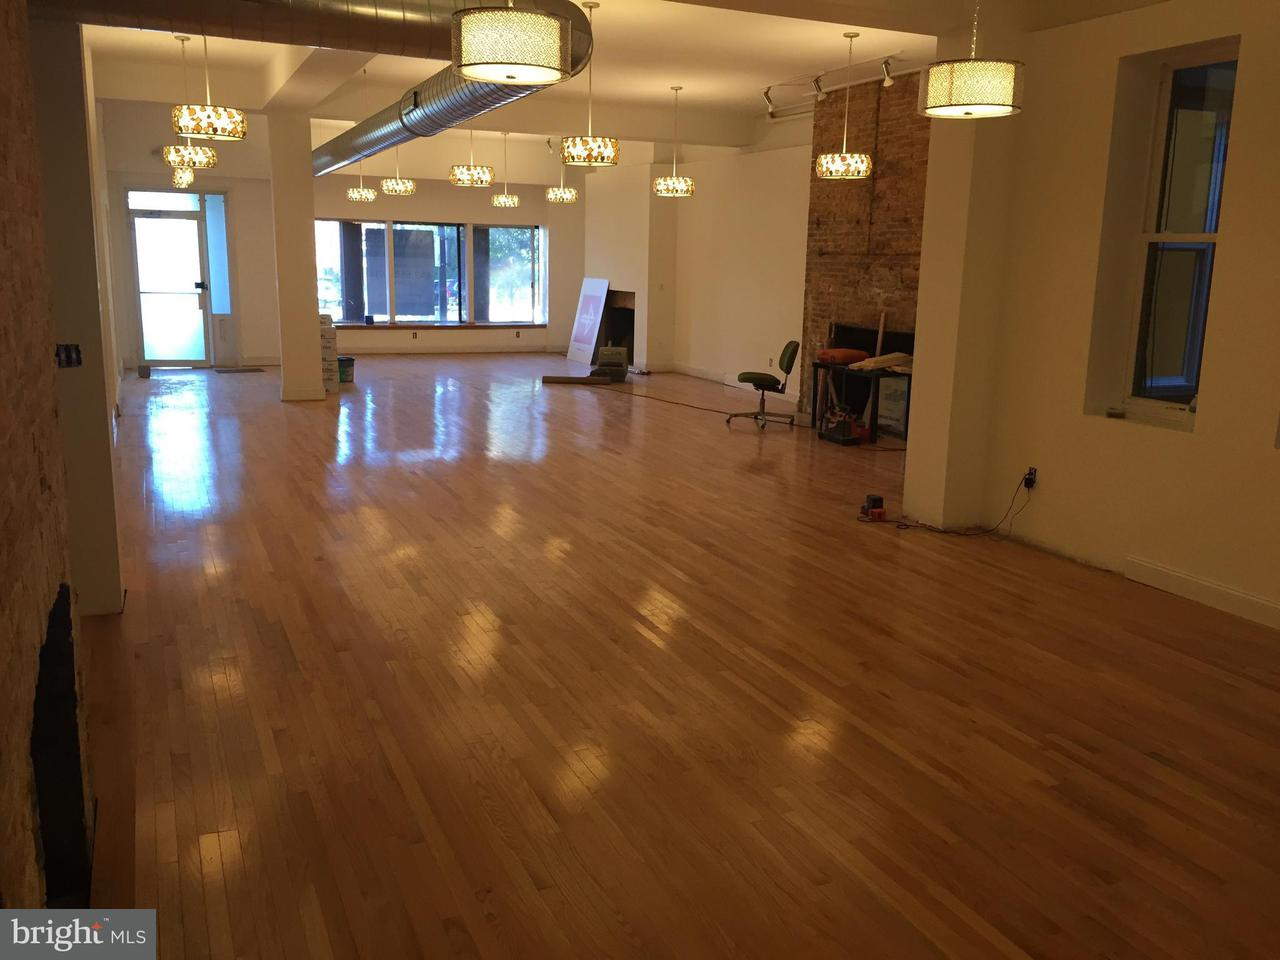 Other Residential for Rent at 916 N Charles St Baltimore, Maryland 21201 United States